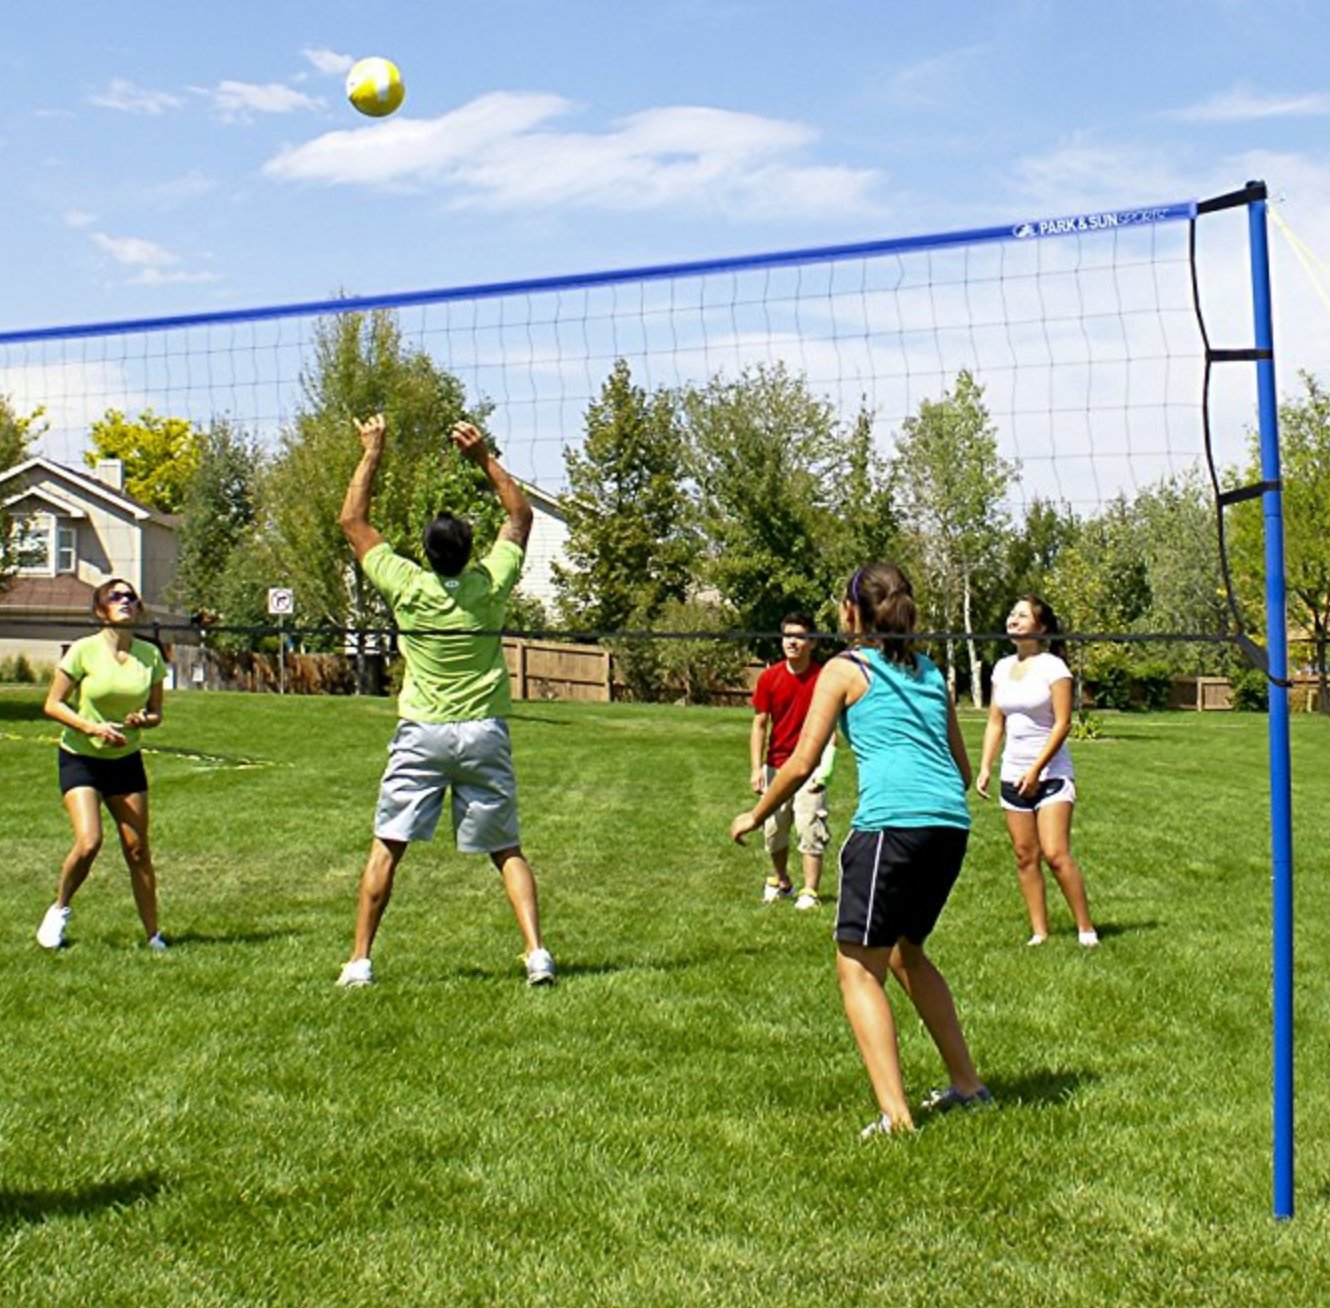 milwaukee volleyball net game rental